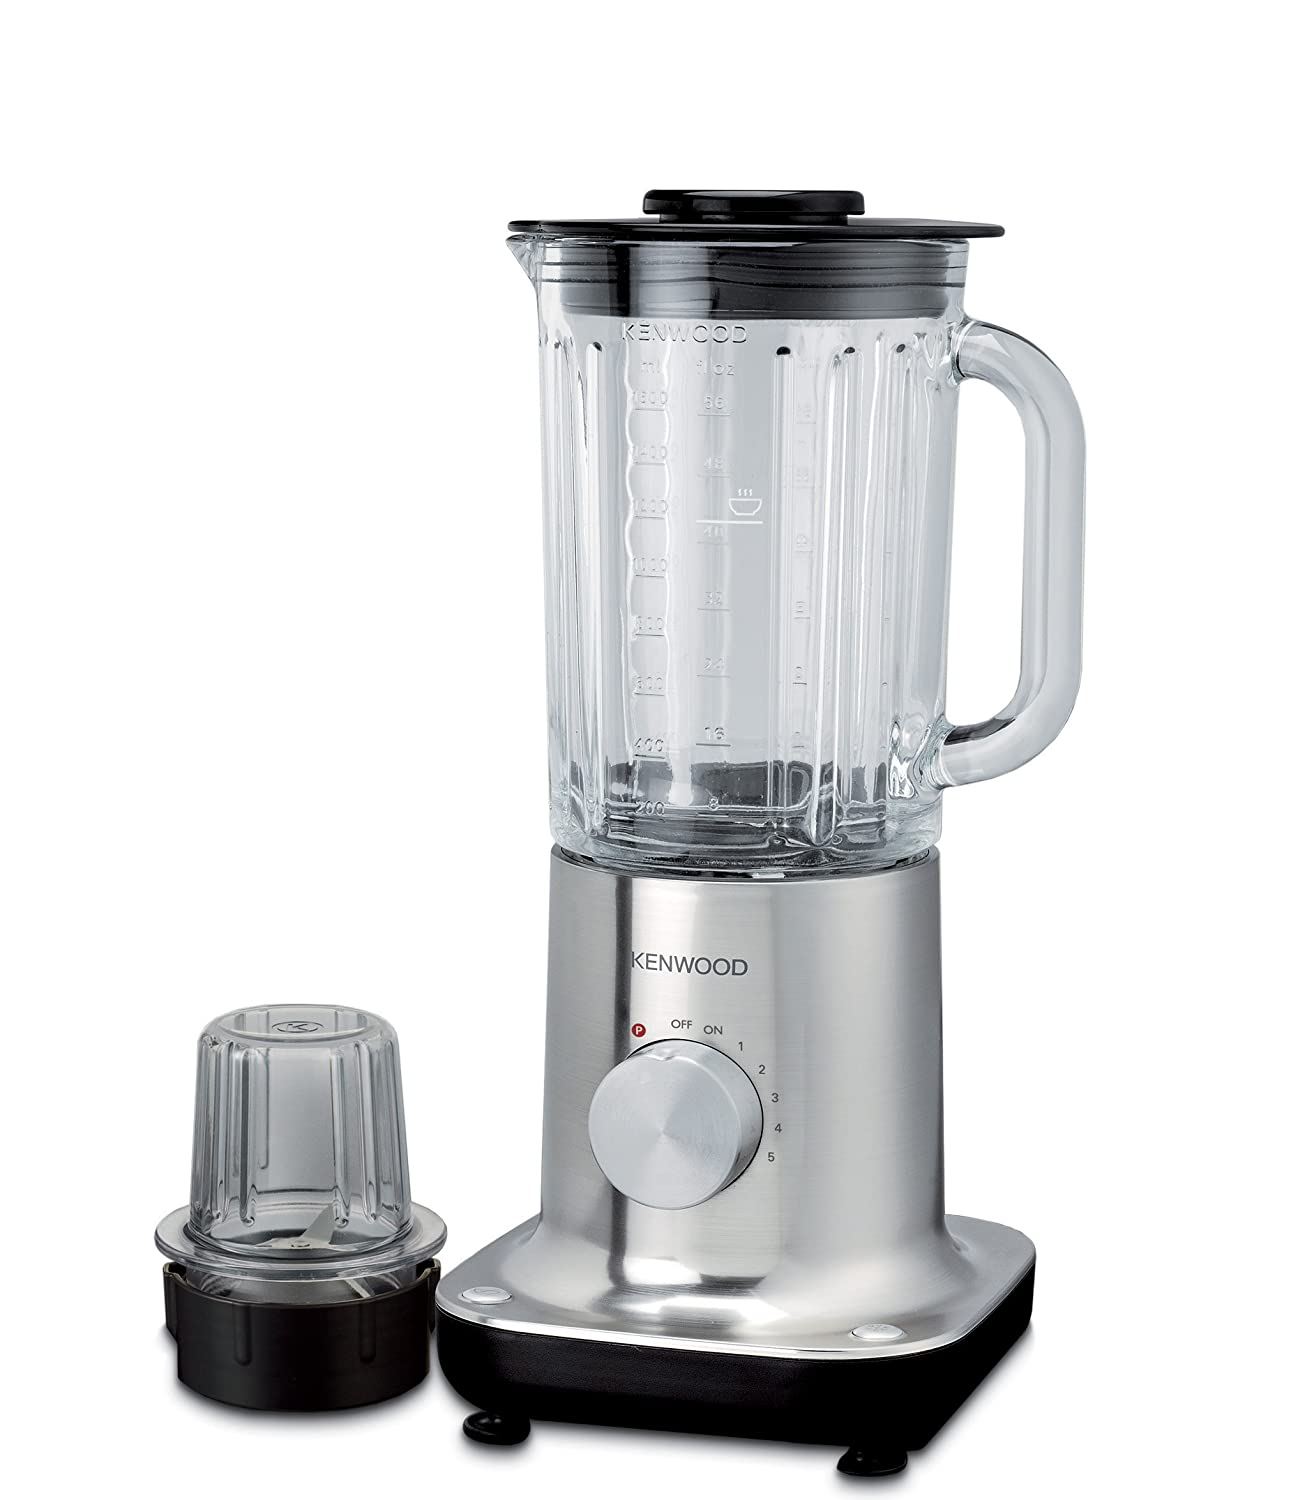 Kenwood BL705 ThermoResist Blender DeLonghi America Inc.